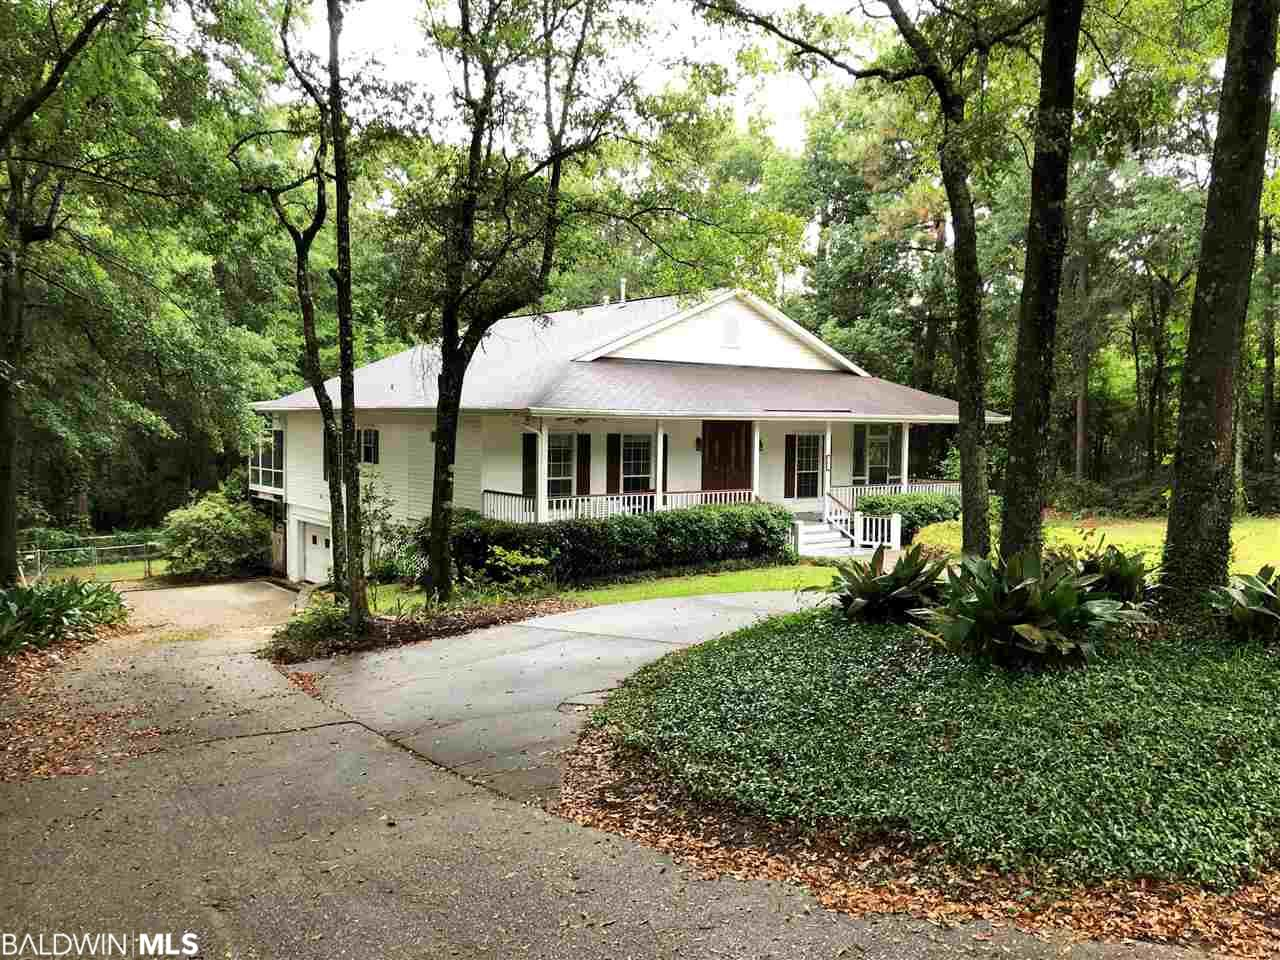 500 Washington Drive, Fairhope, AL 36532